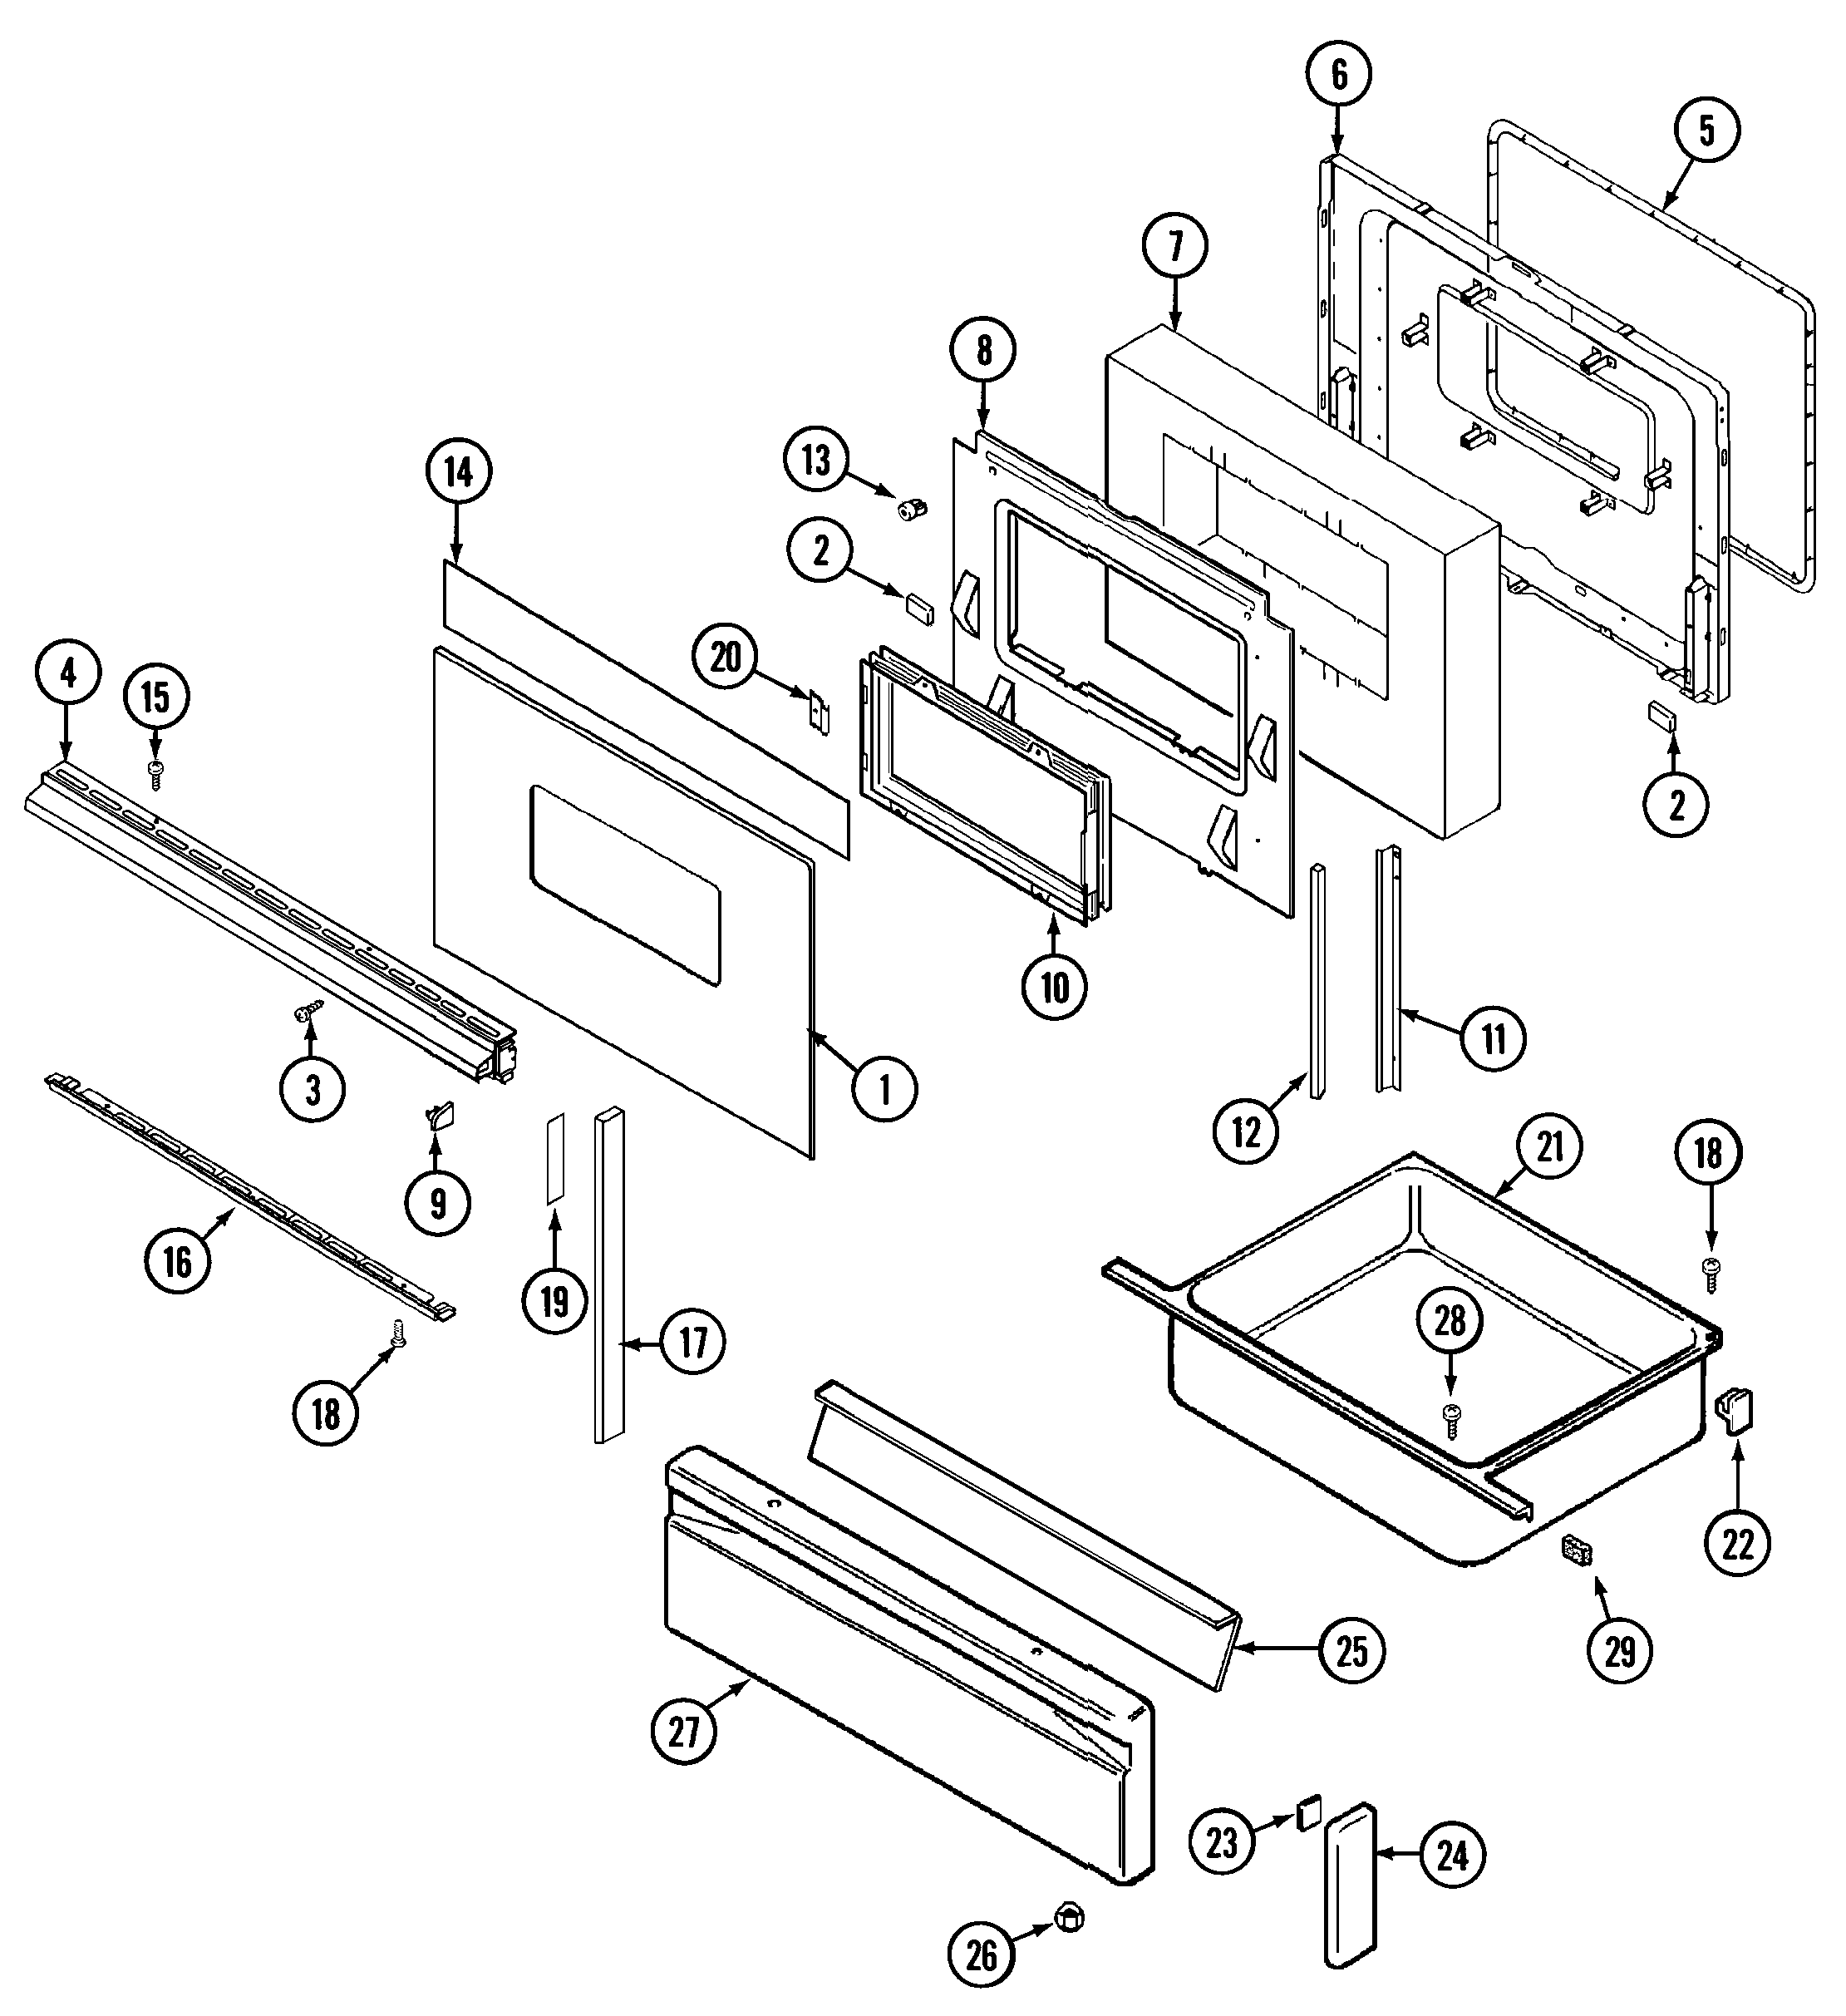 6498vtv gas range door/drawer parts diagram